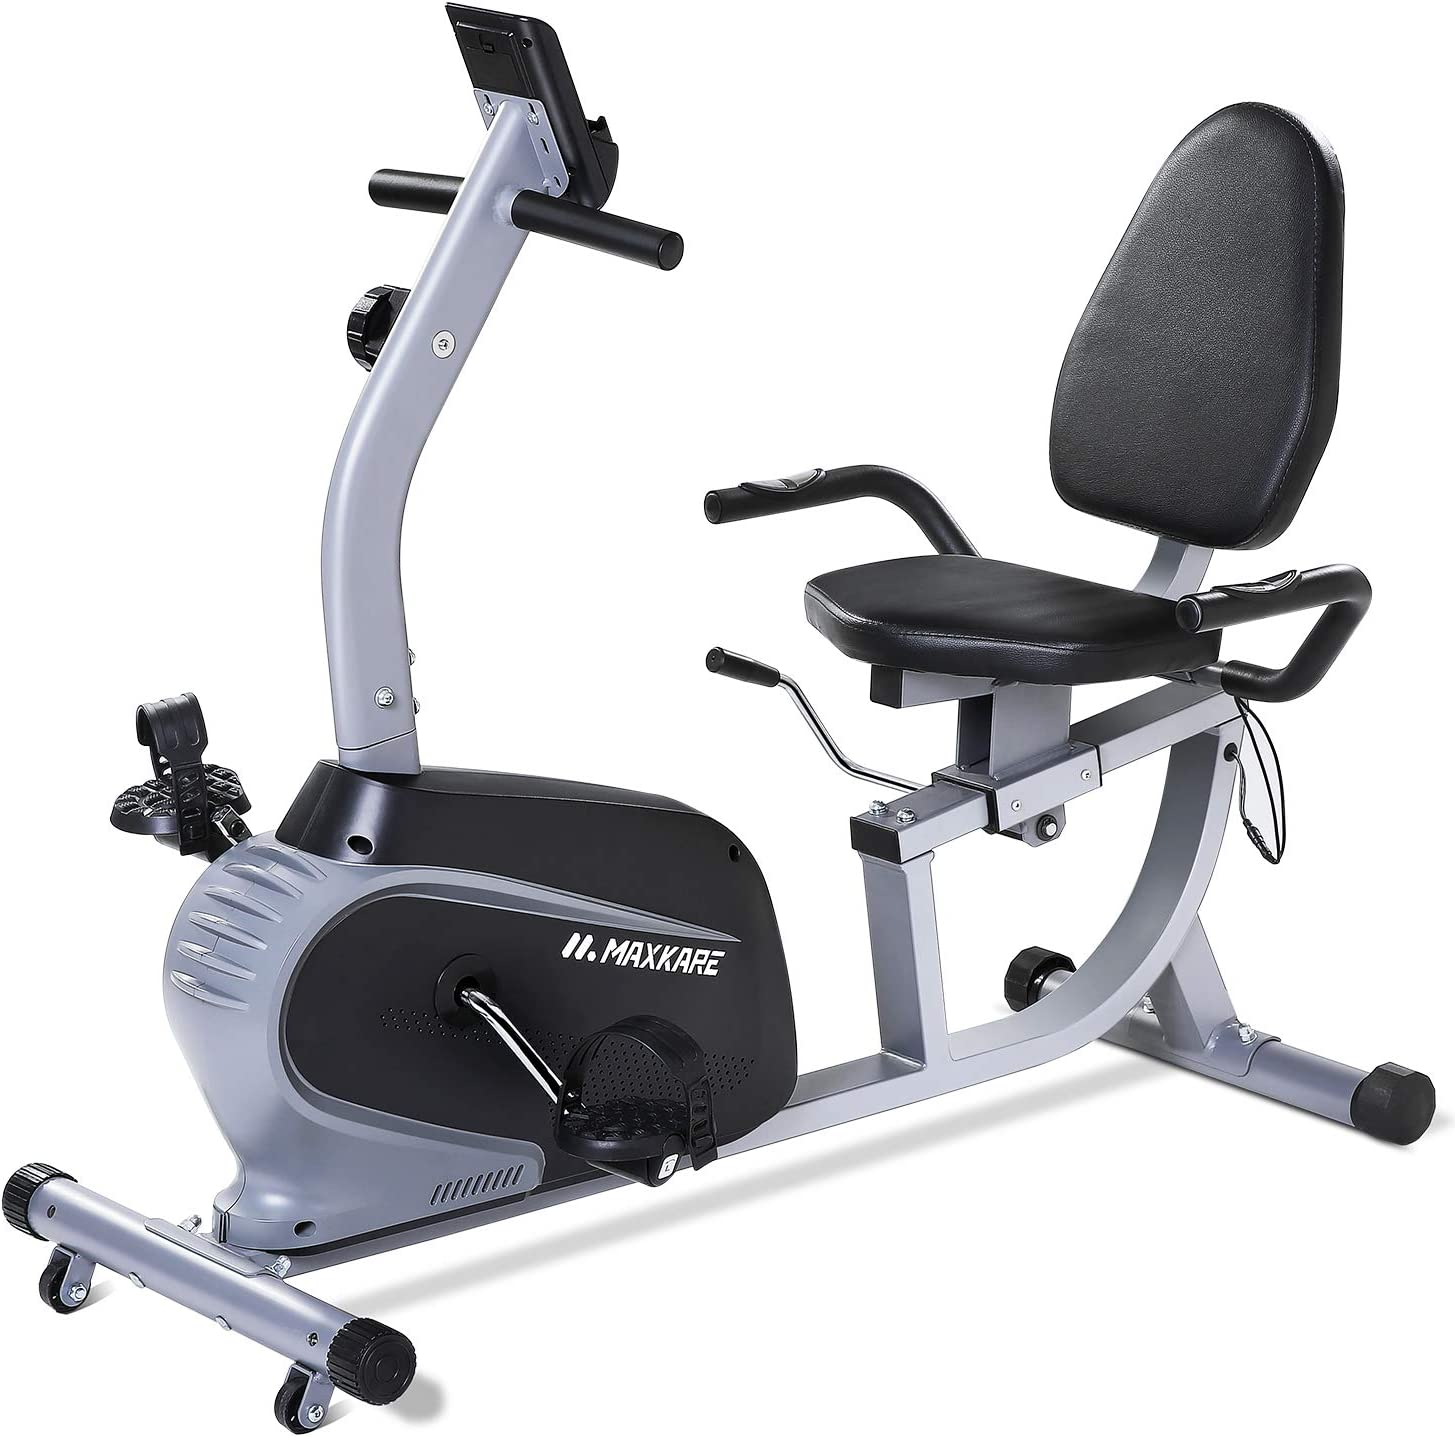 5 Best Exercise Bike For Seniors For More SAFE Workout 2020 4